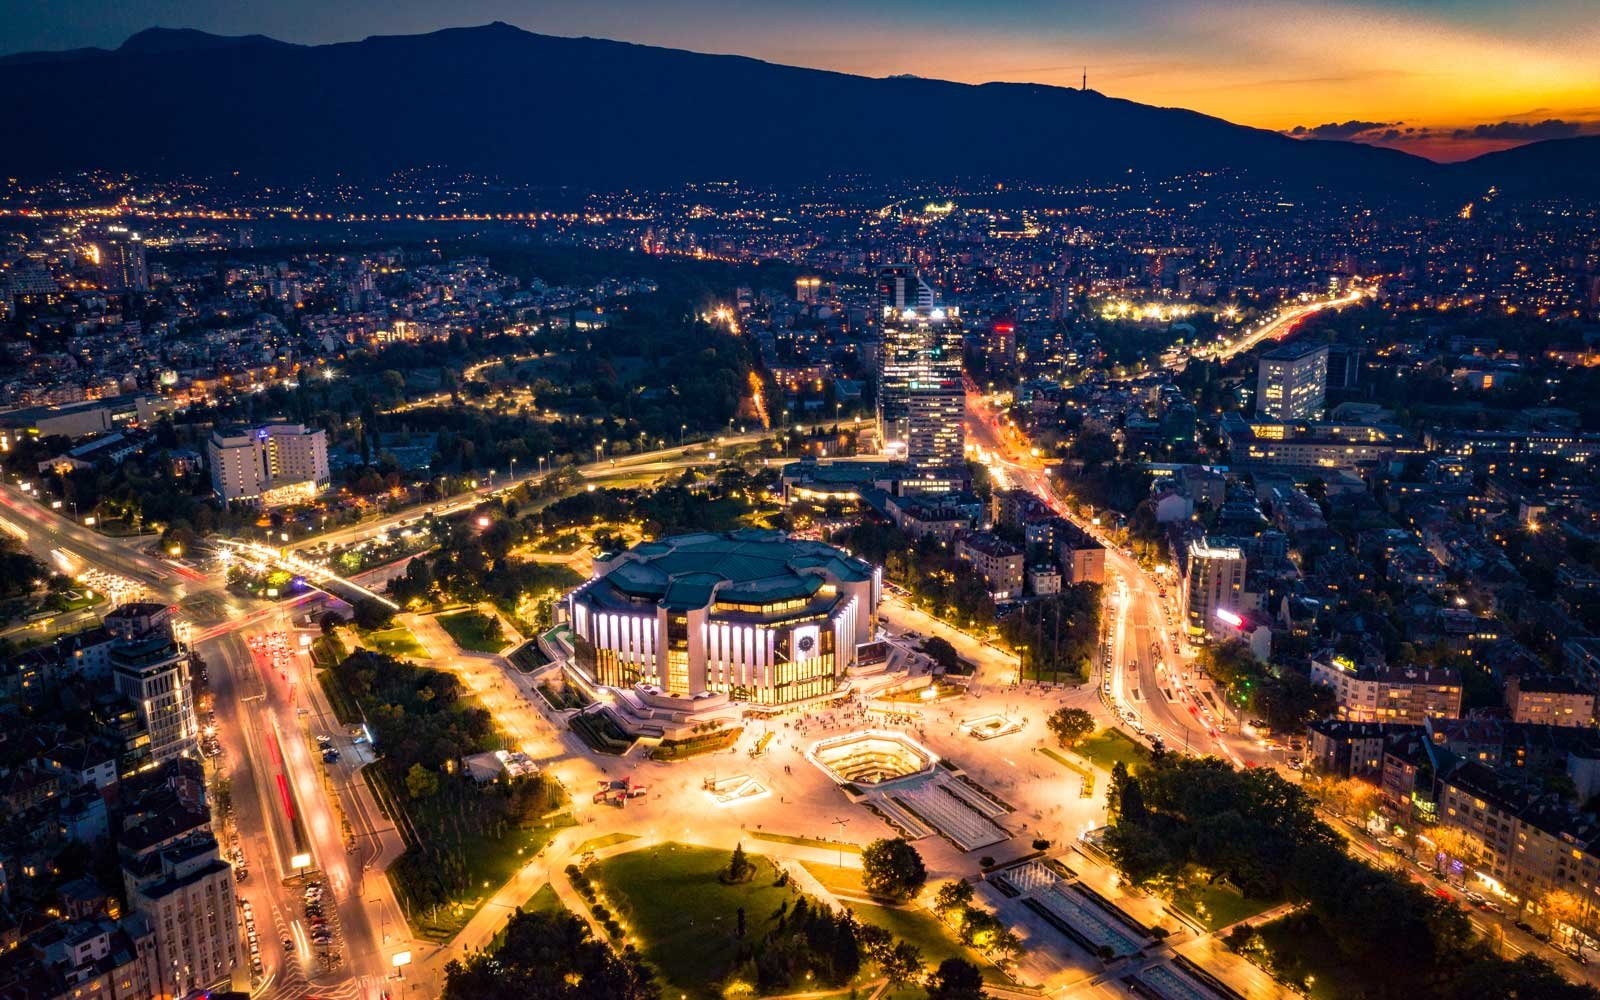 Bulgaria's capital of Sofia ranks as one of the cheapest cities to visit for a mini-getaway for two.